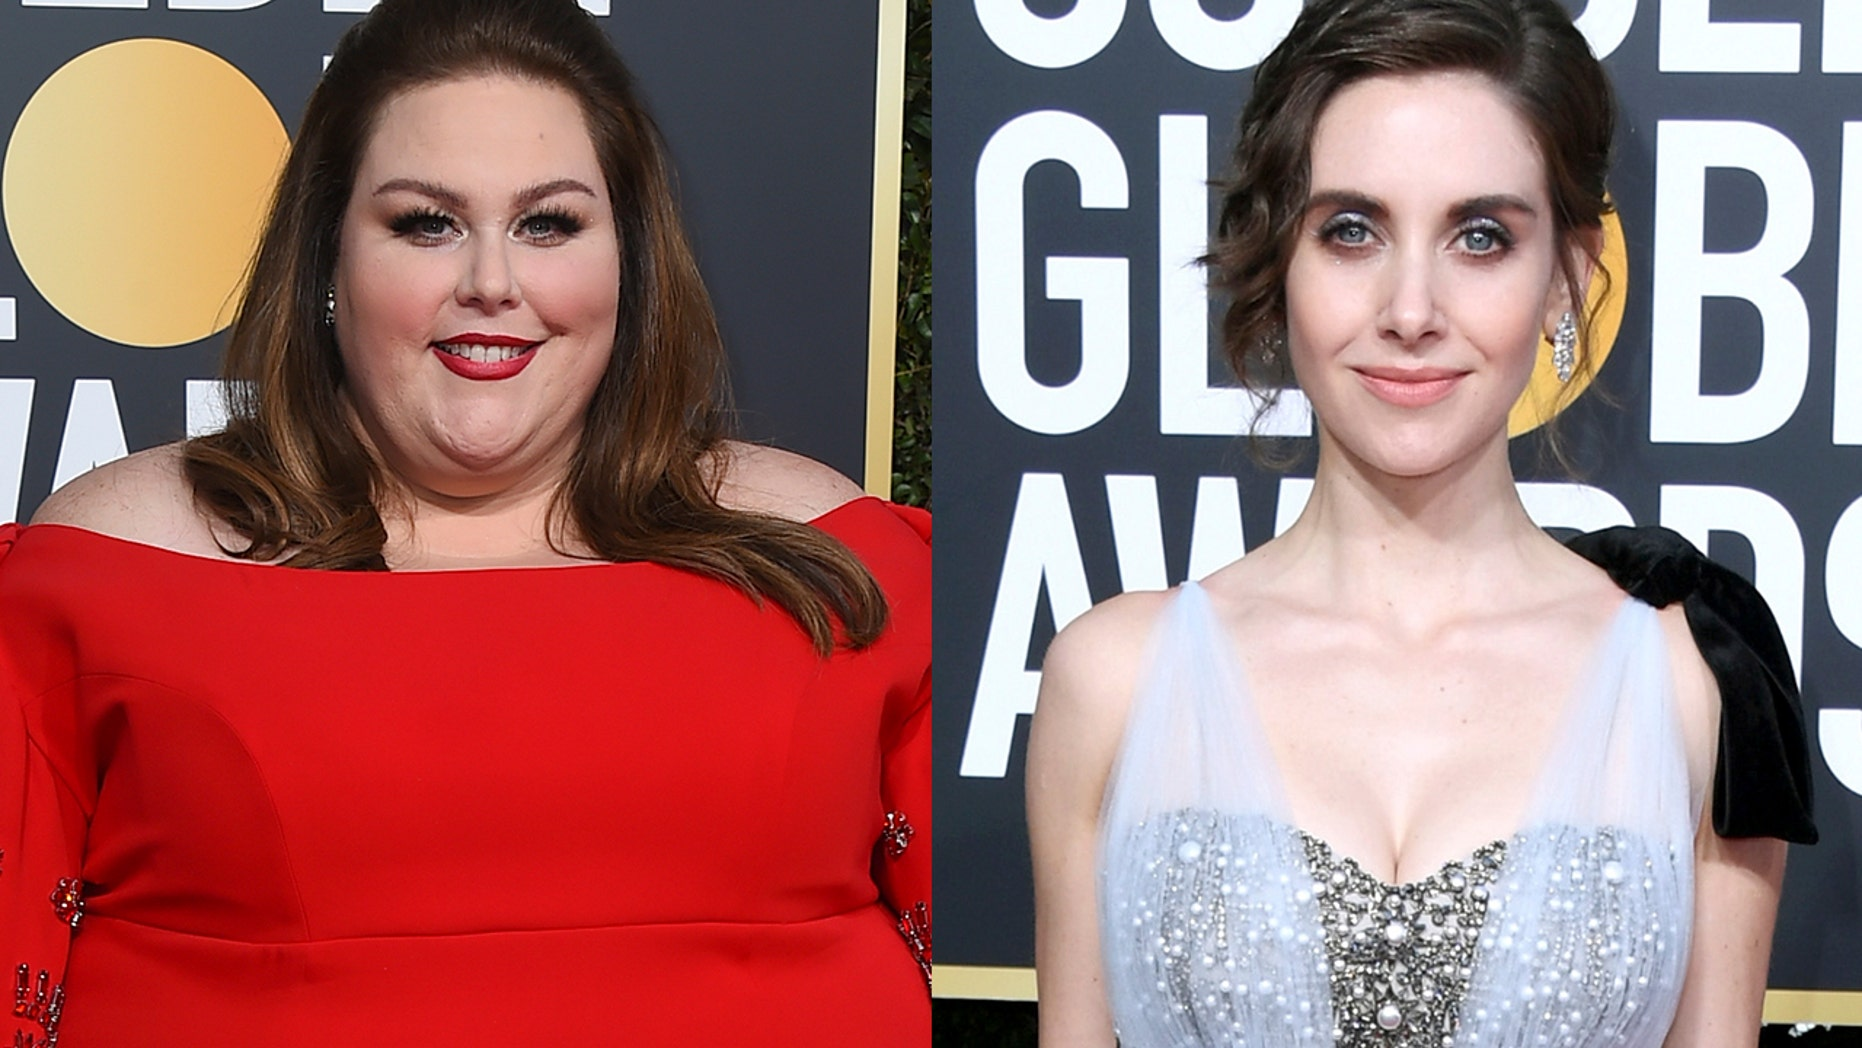 Chrissy Metz, Alison Brie shut down rumour about insult